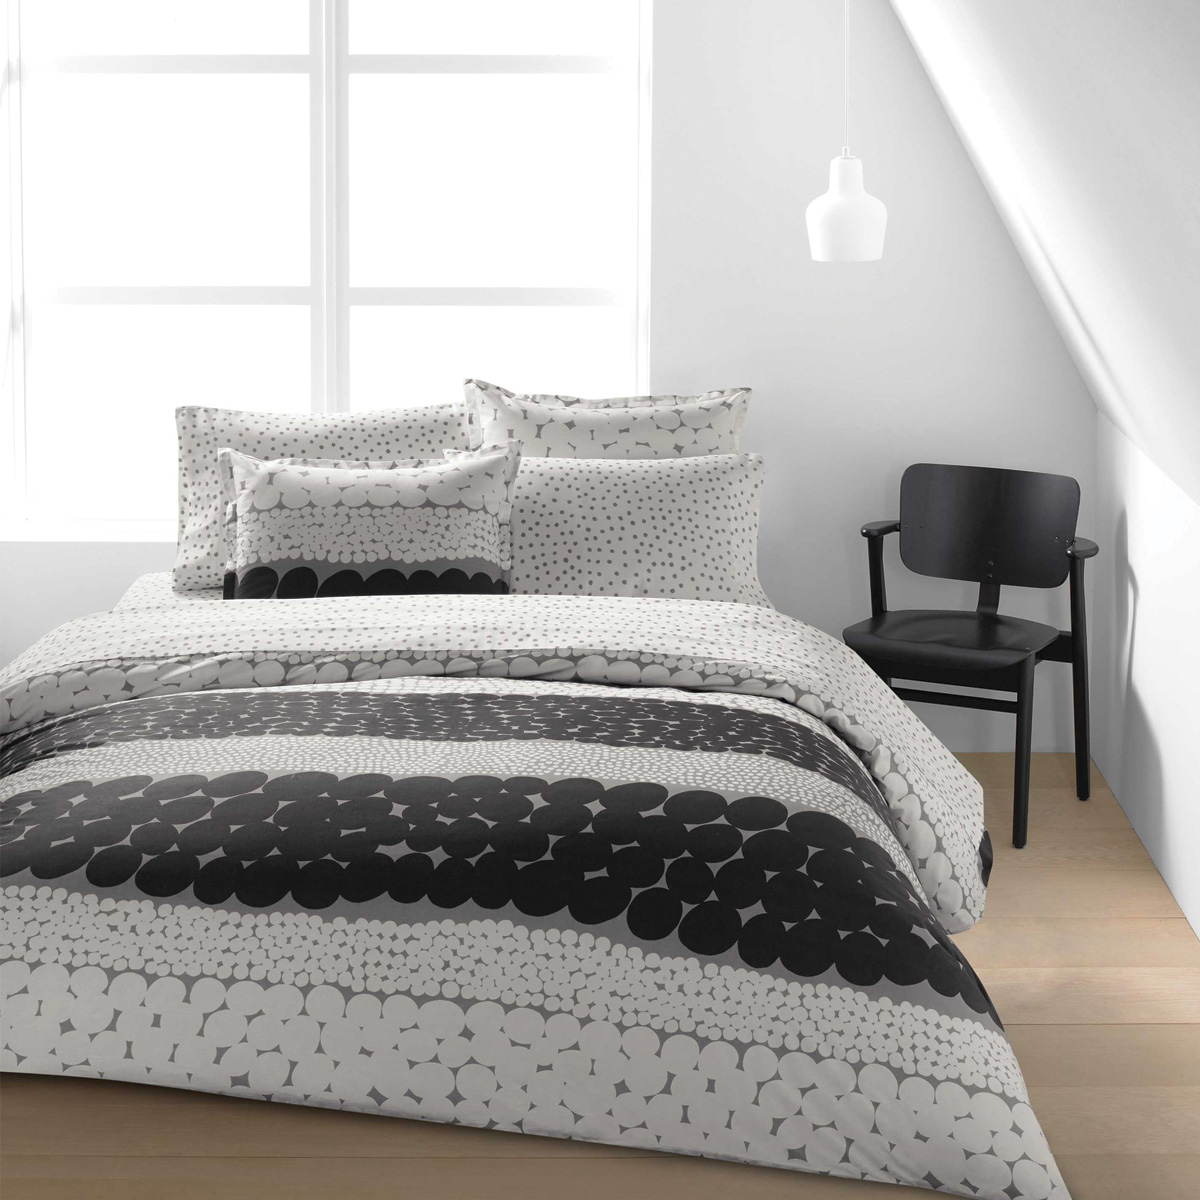 sets bedding cover combine king comforter gray white lostcoastshuttle full duvet black and beautiful set